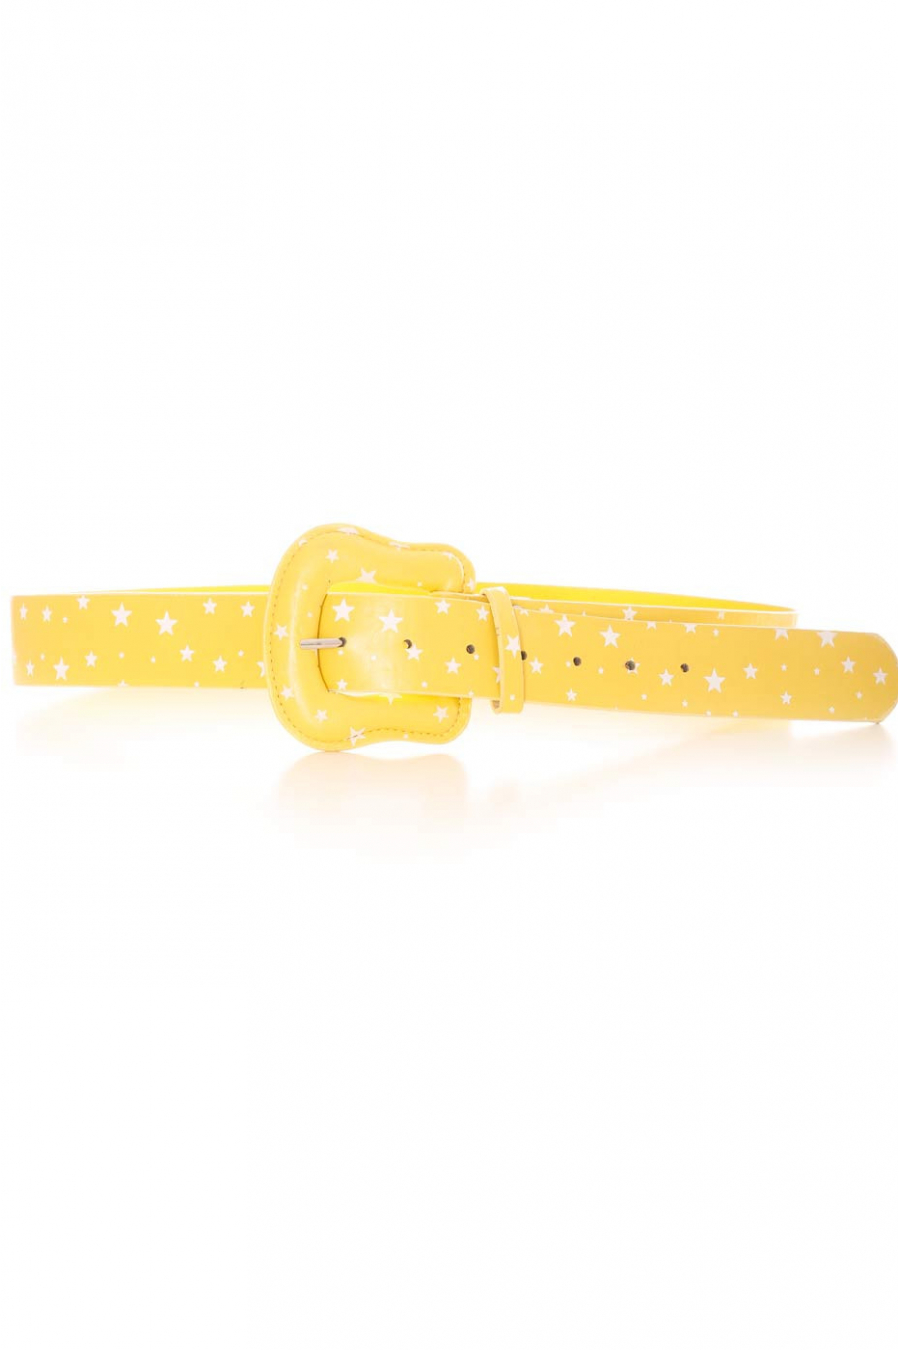 Yellow belt with white stars pattern. Accessory BG-P009